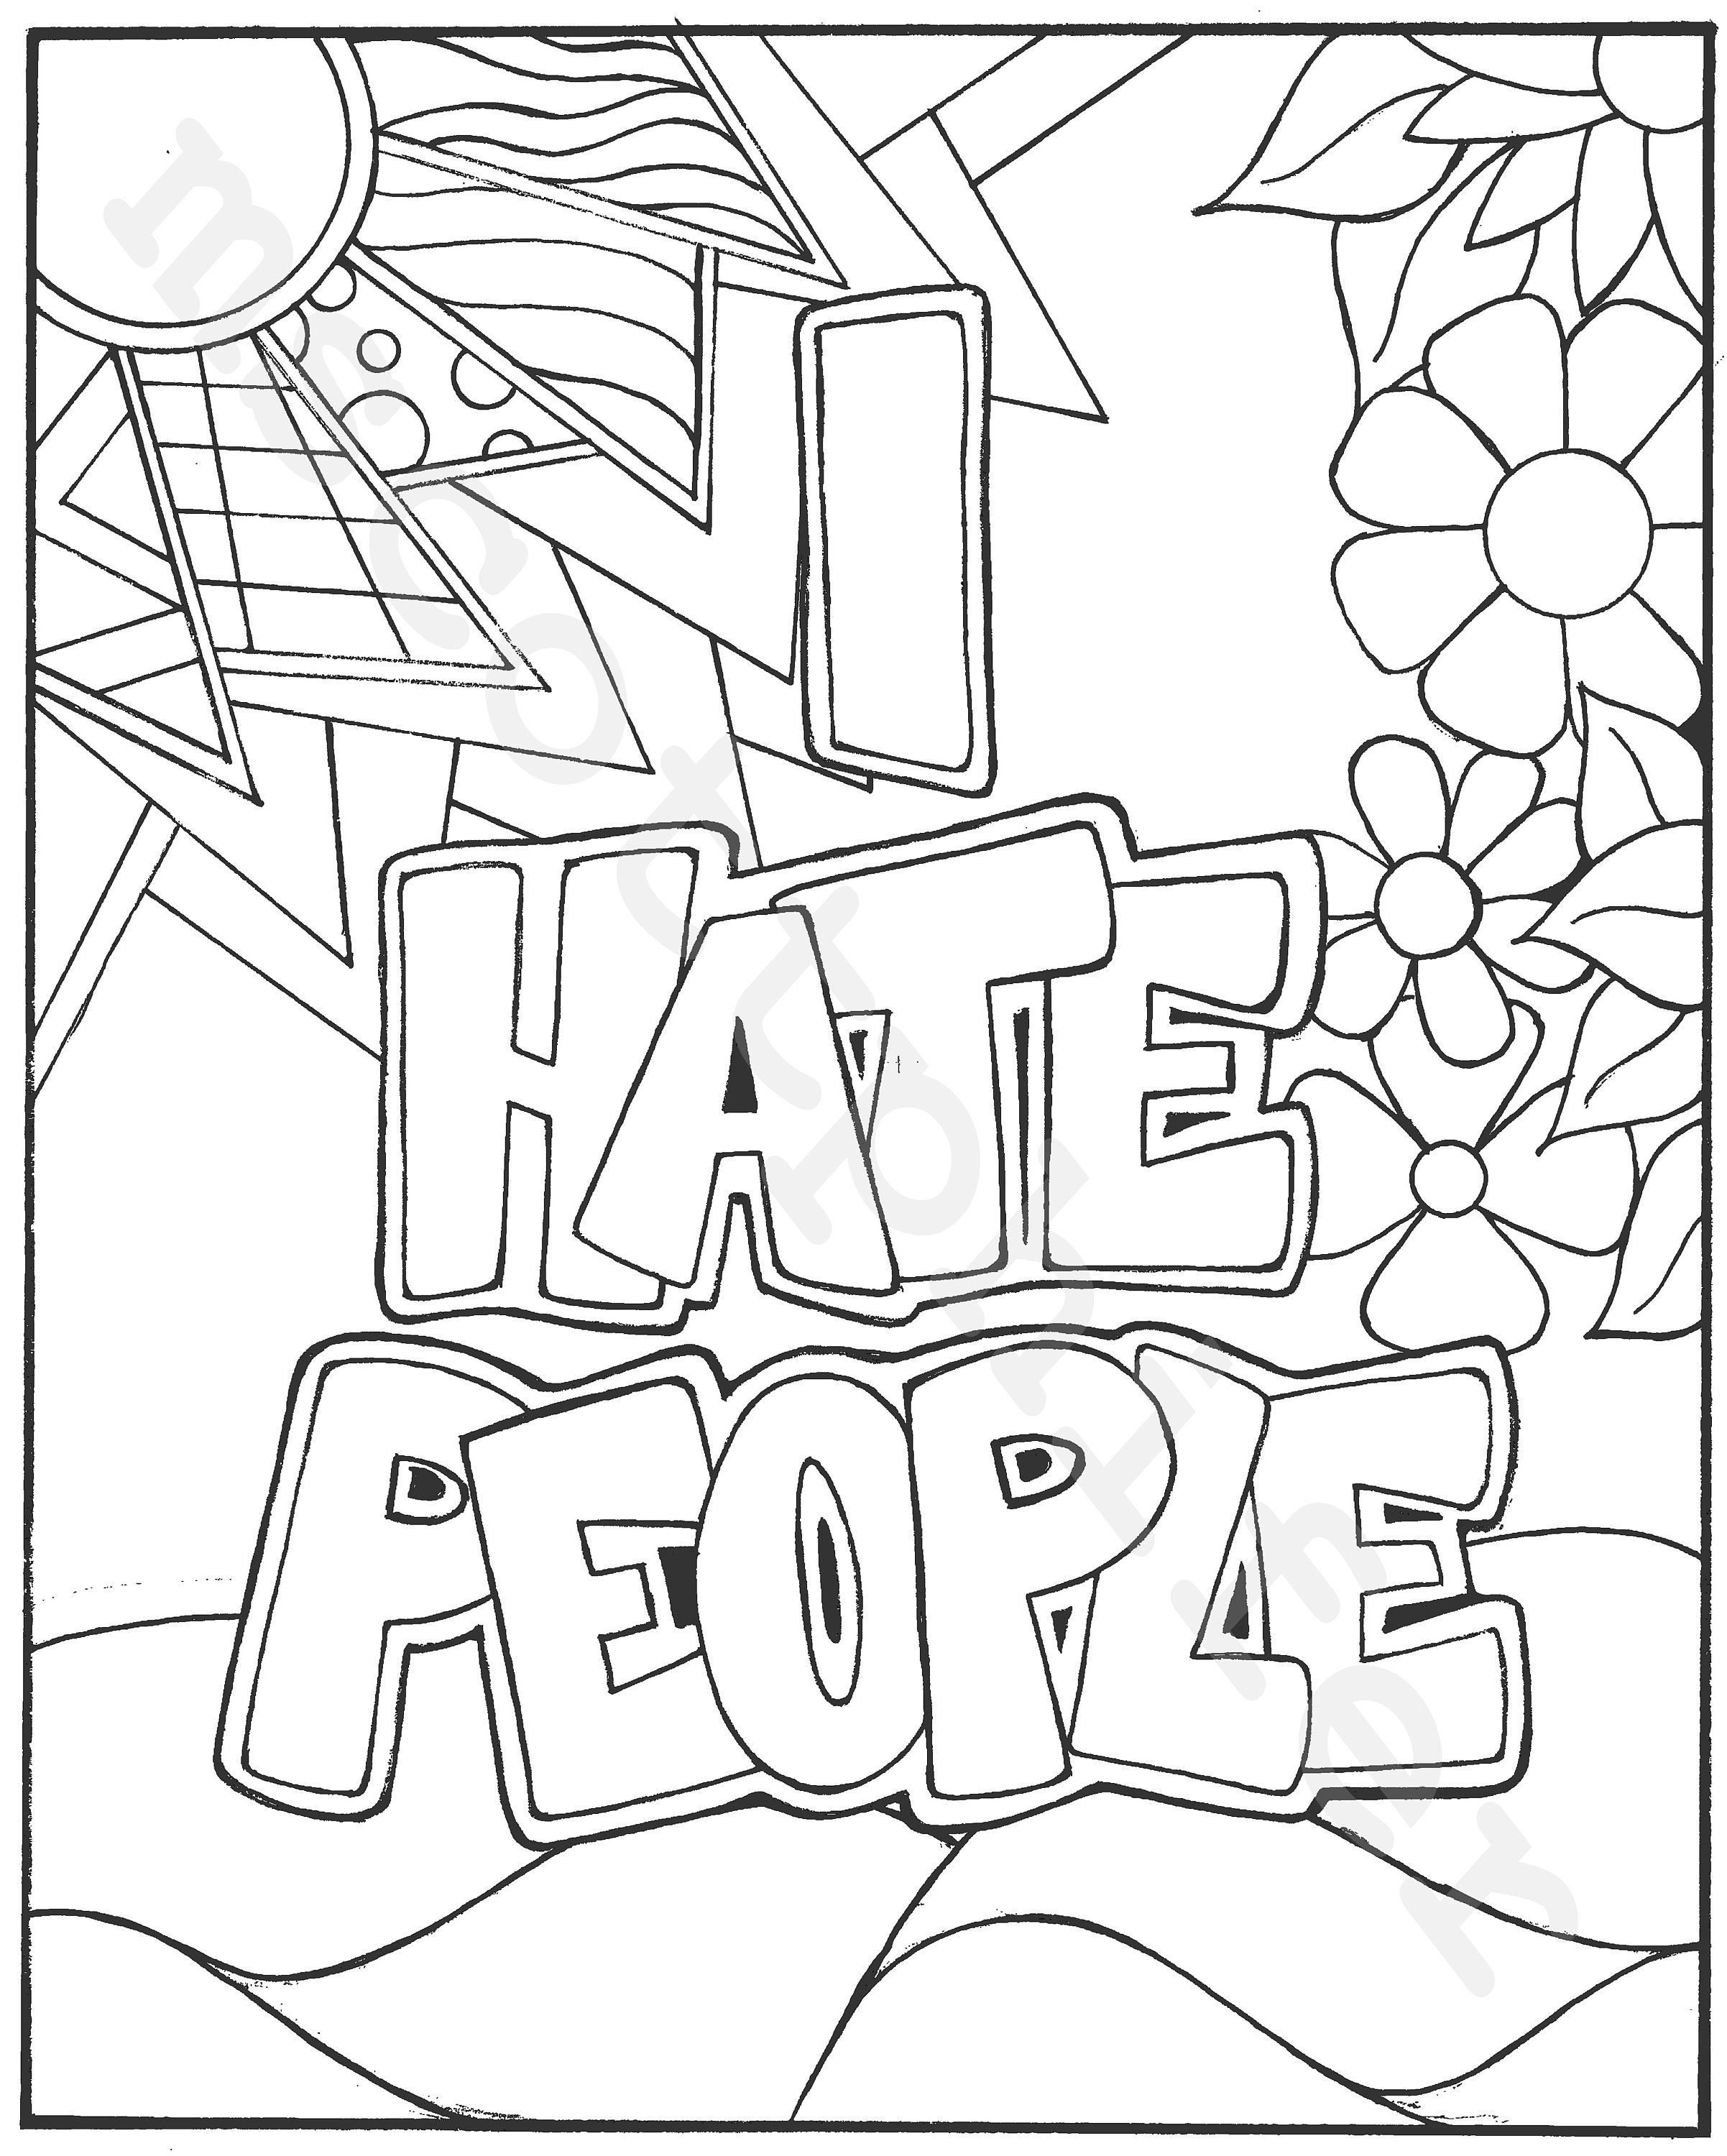 Pin On Cuss Word Coloring Pages